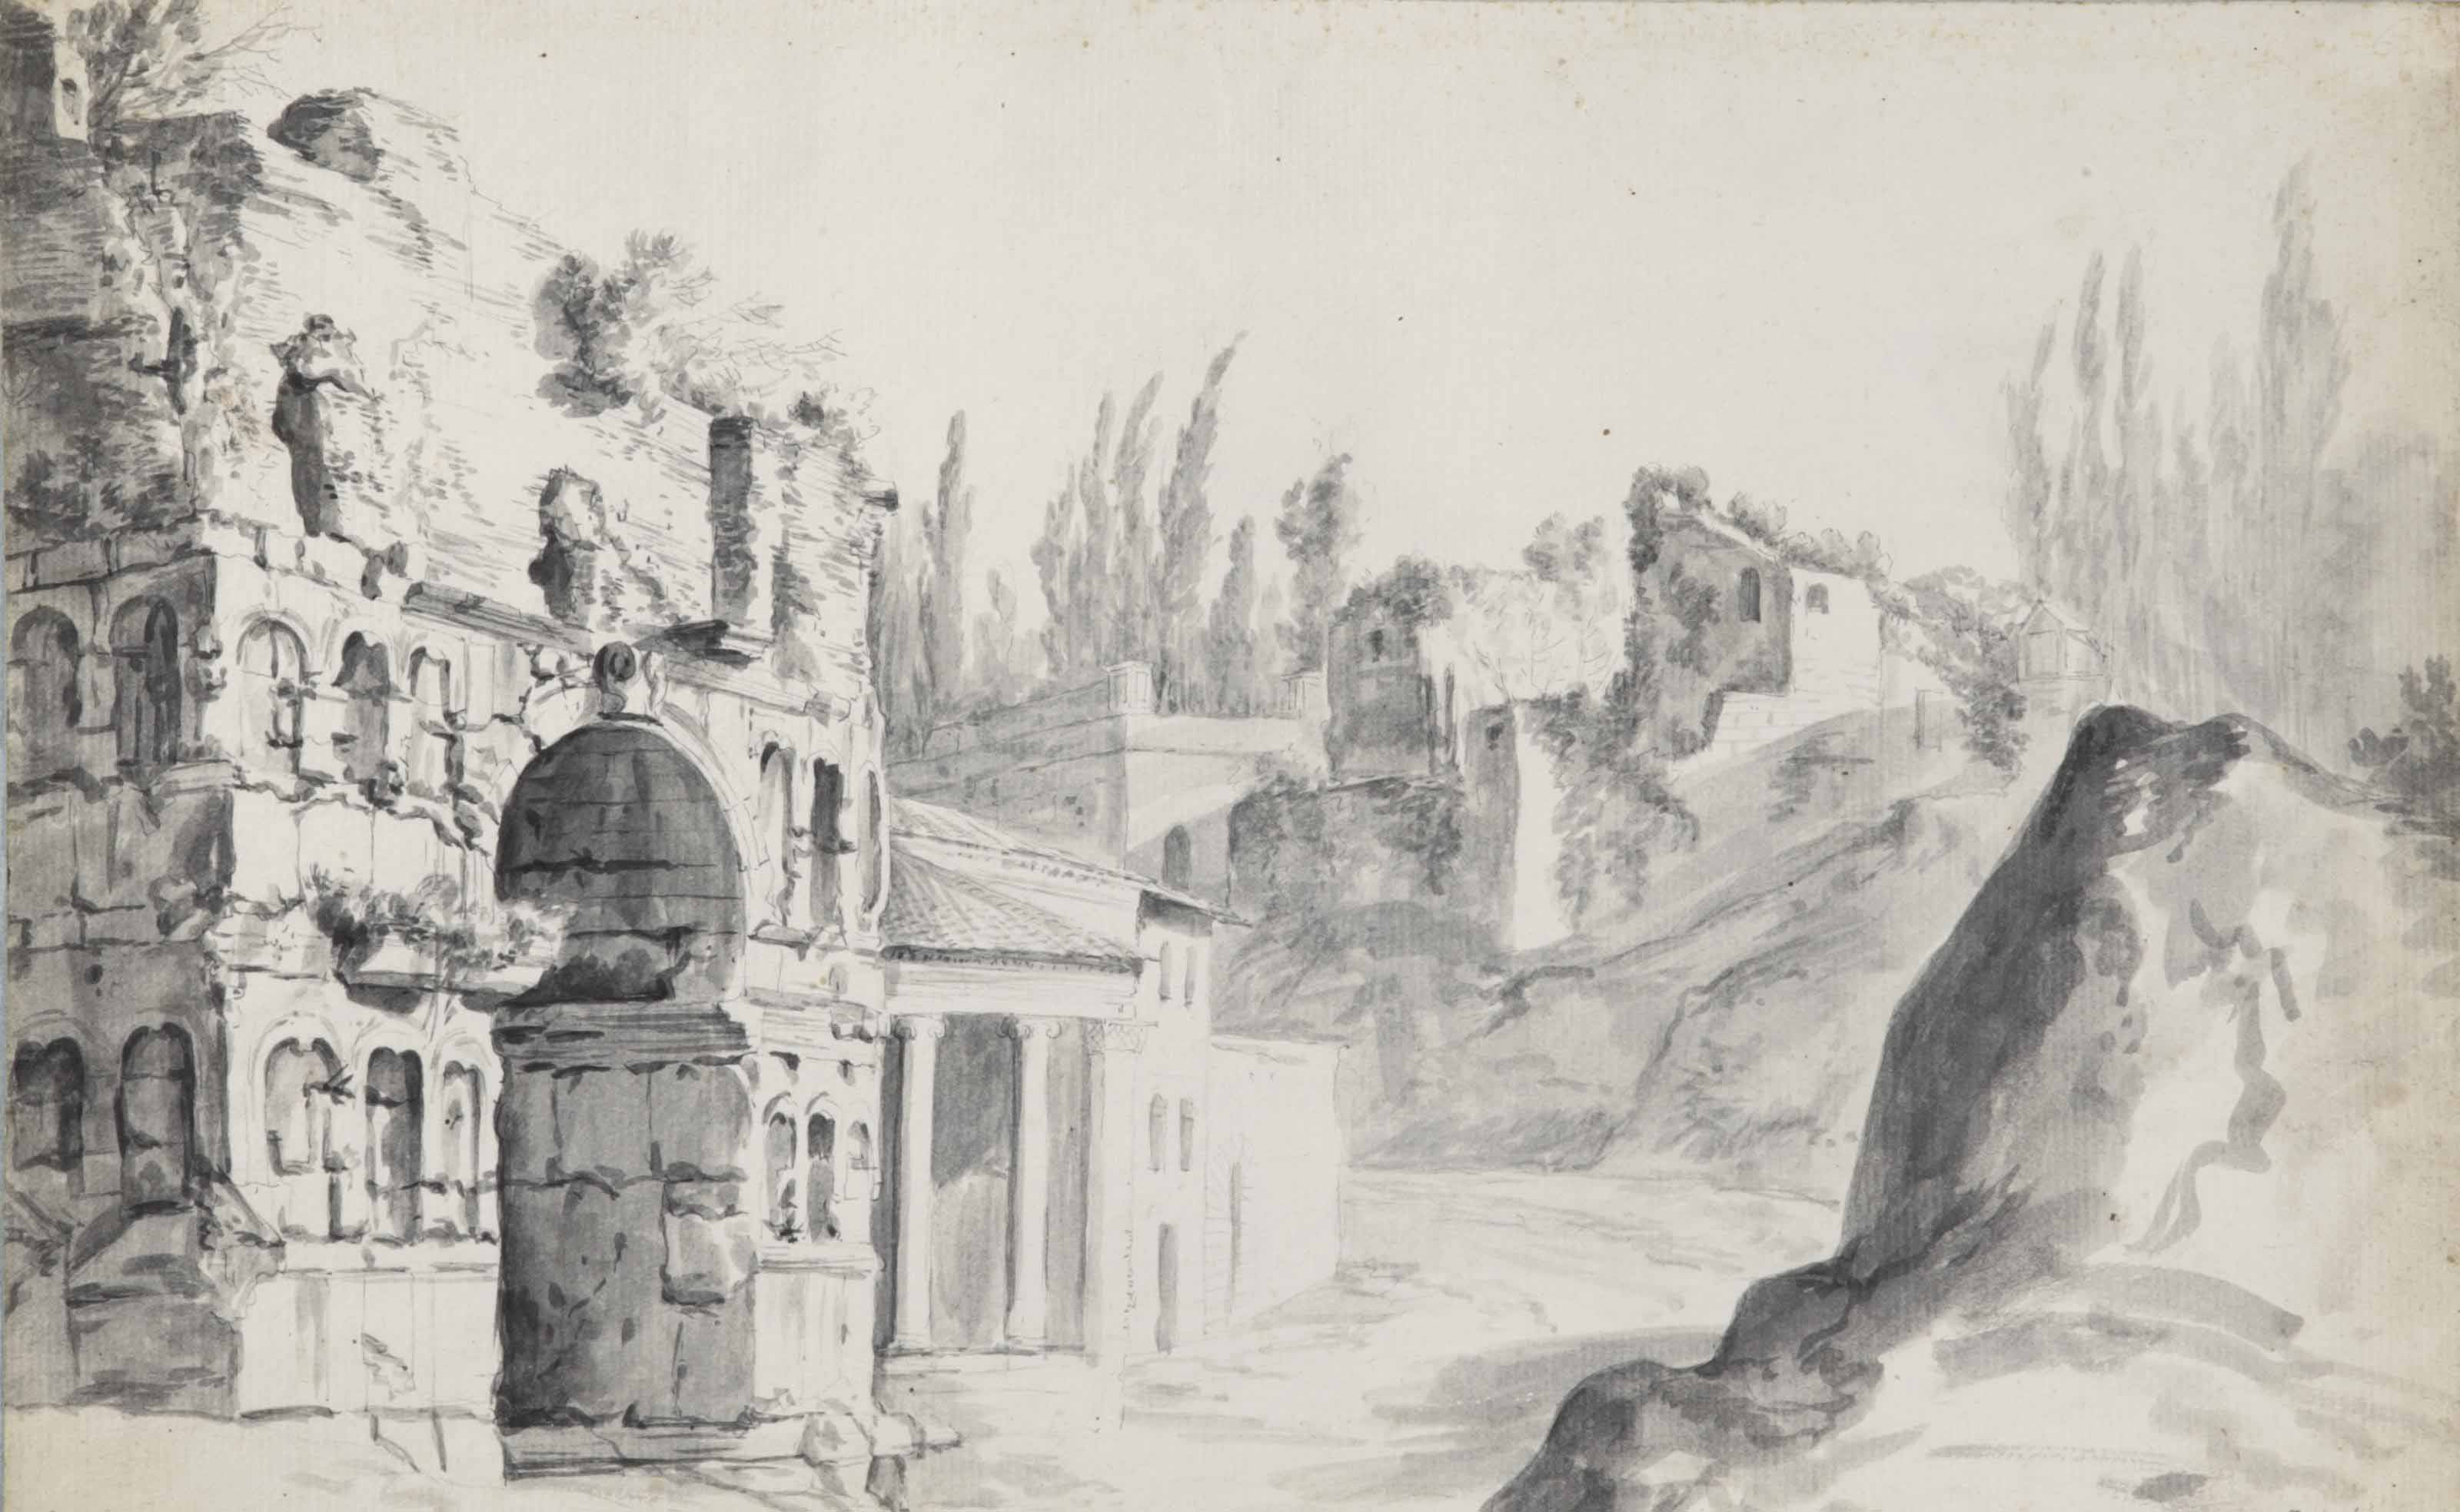 The Arch of Janus Quadrifons in Rome